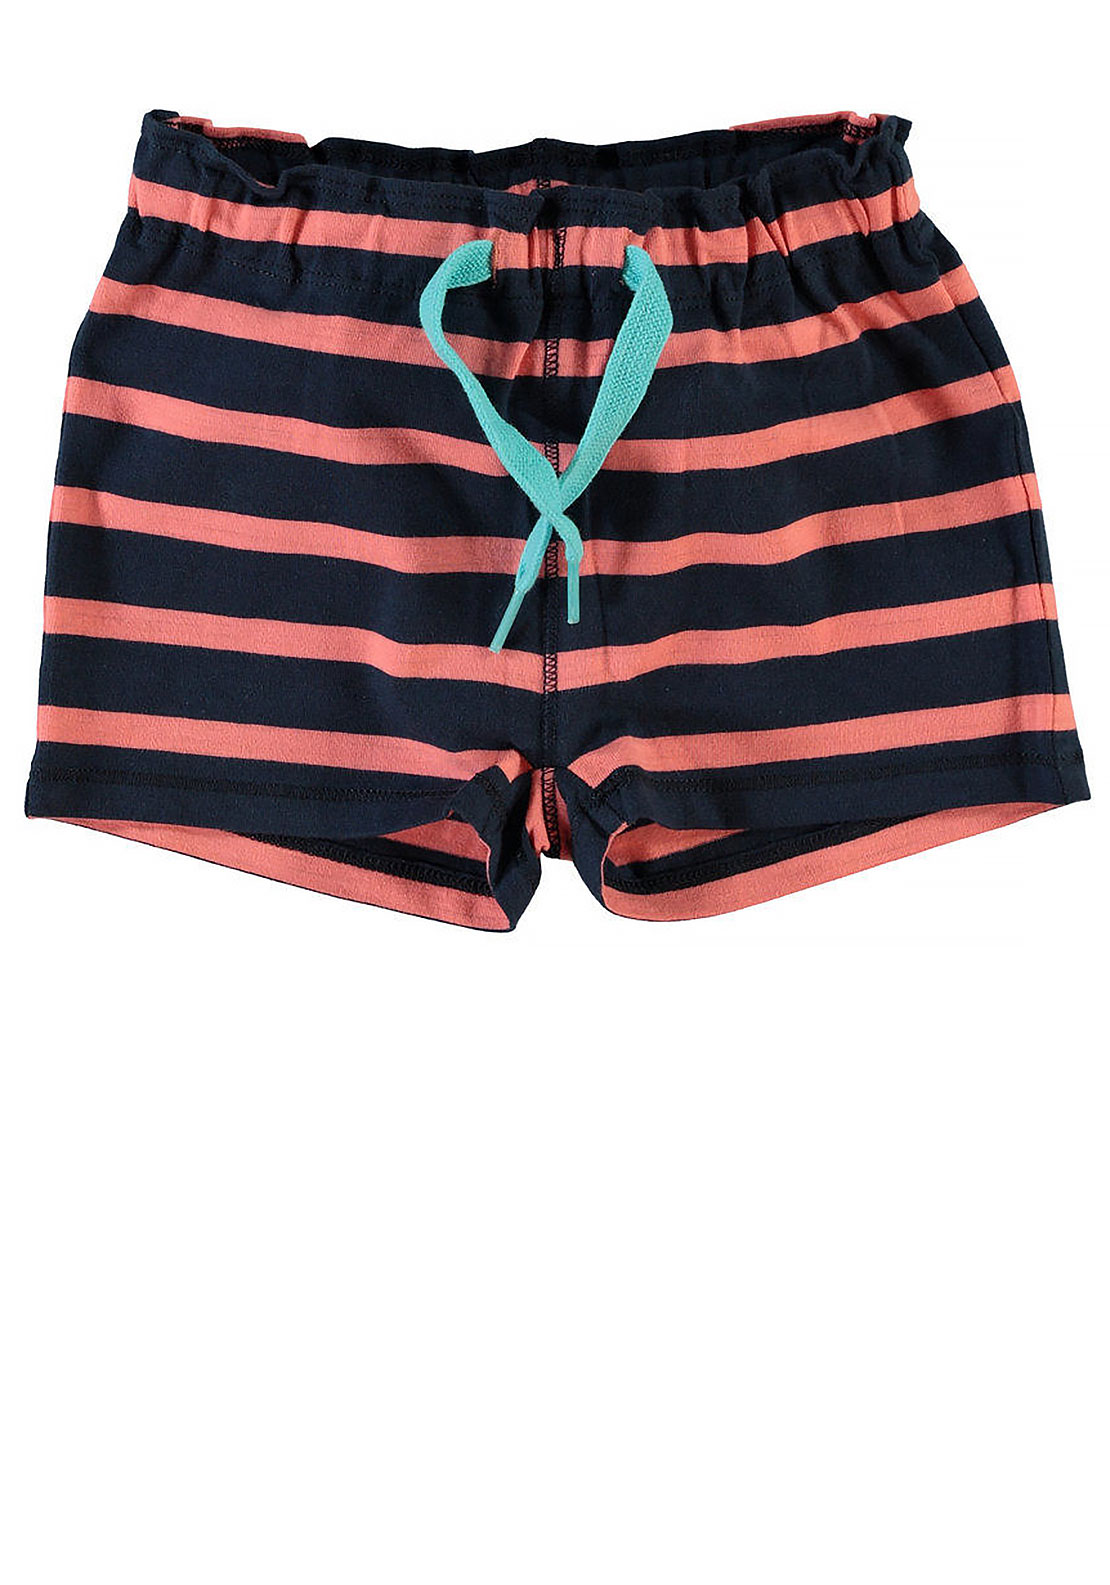 Name It Mini Boys Striped Shorts, Coral and Navy